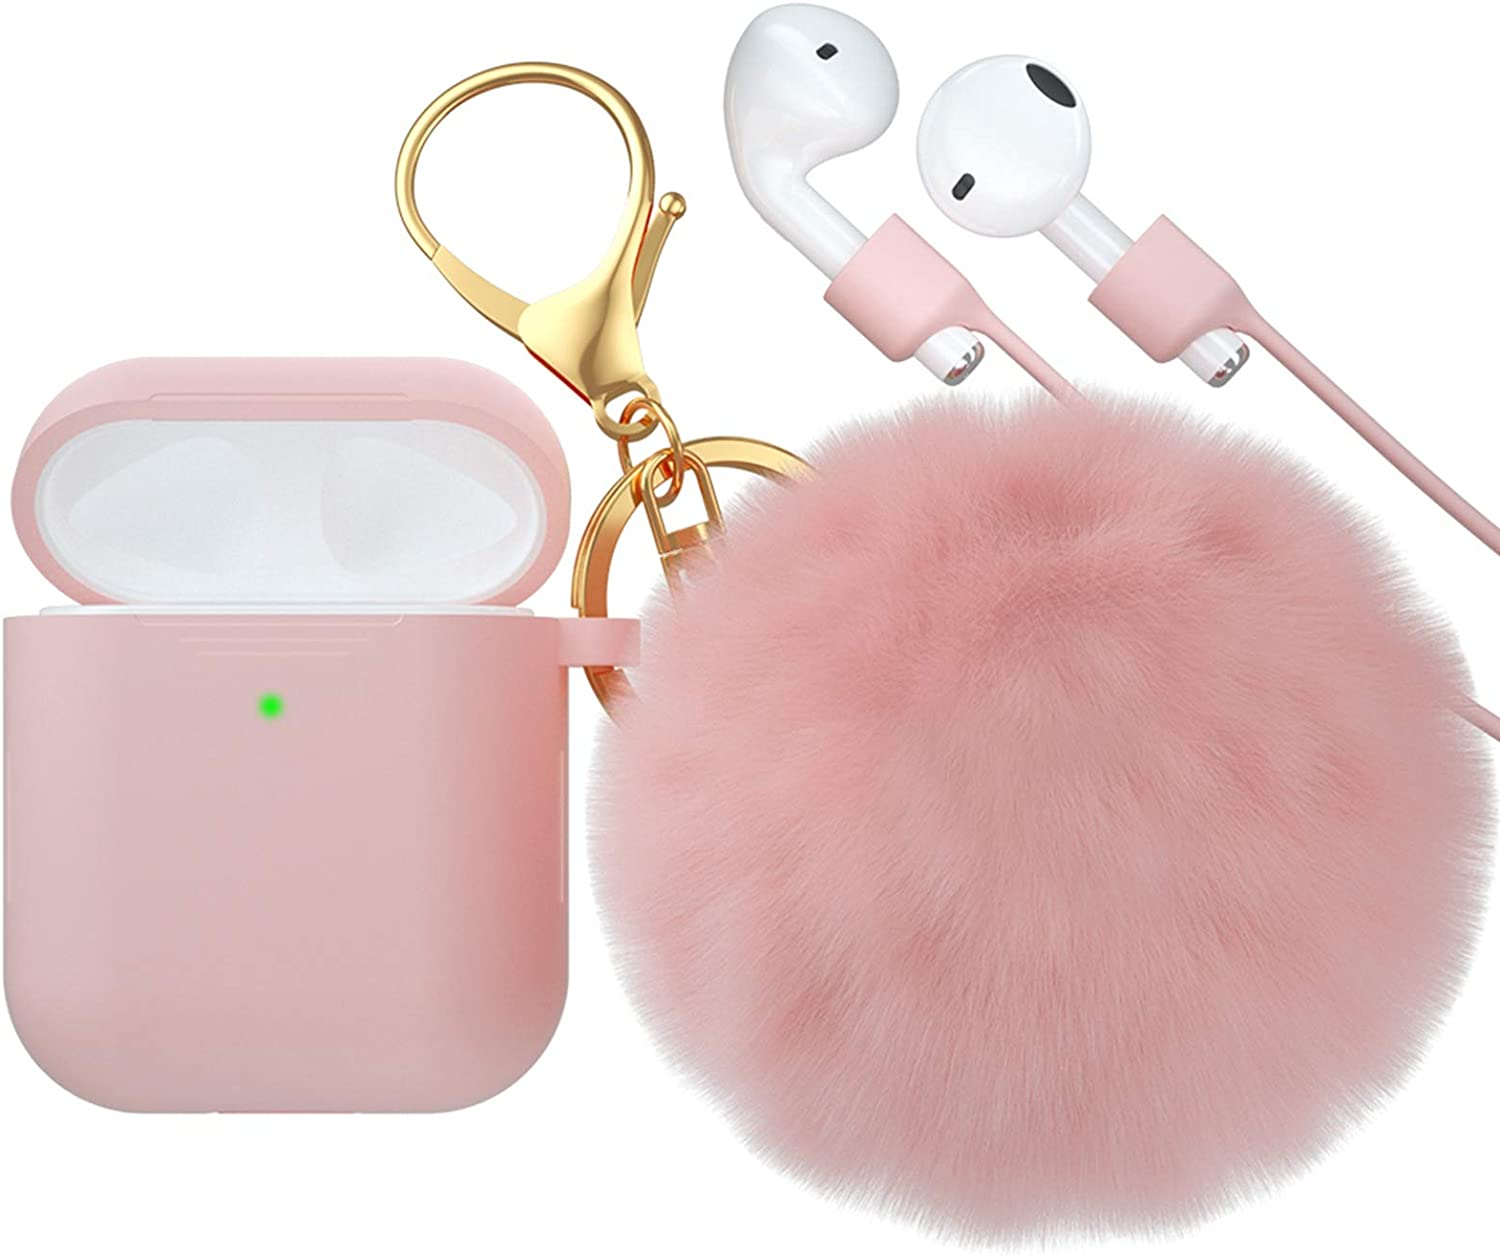 CTYBB for Airpod Case,Silicone Airpods Case Cover with Fur Ball Keychain Compatible with Apple Airpods 2/1 (Front LED Visible)